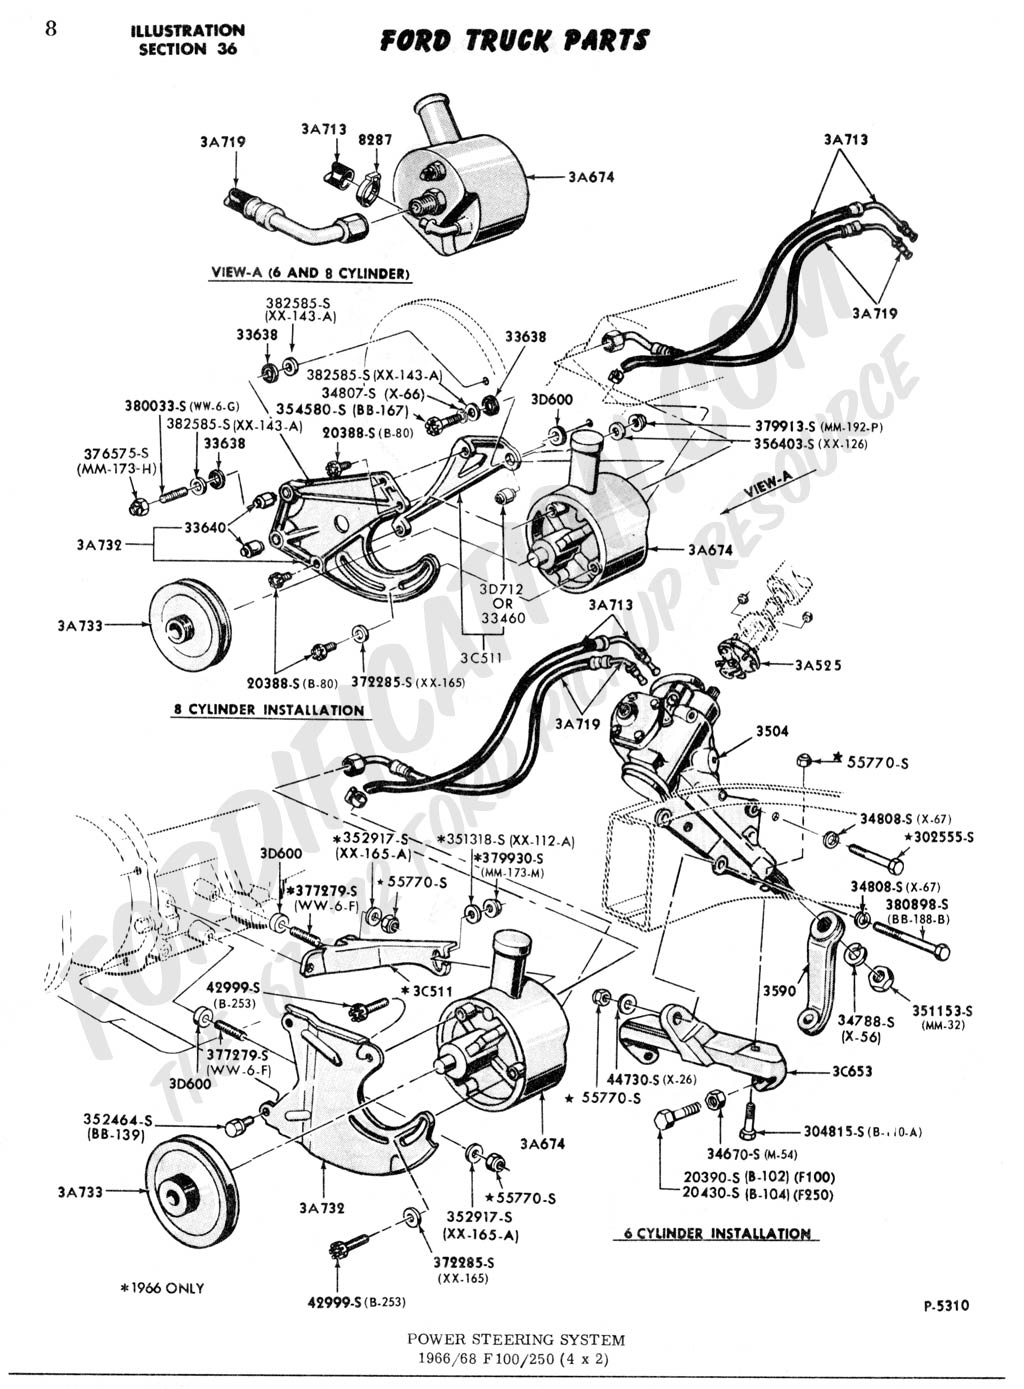 93 ford taurus fuse diagram ford truck technical drawings and schematics section c #5